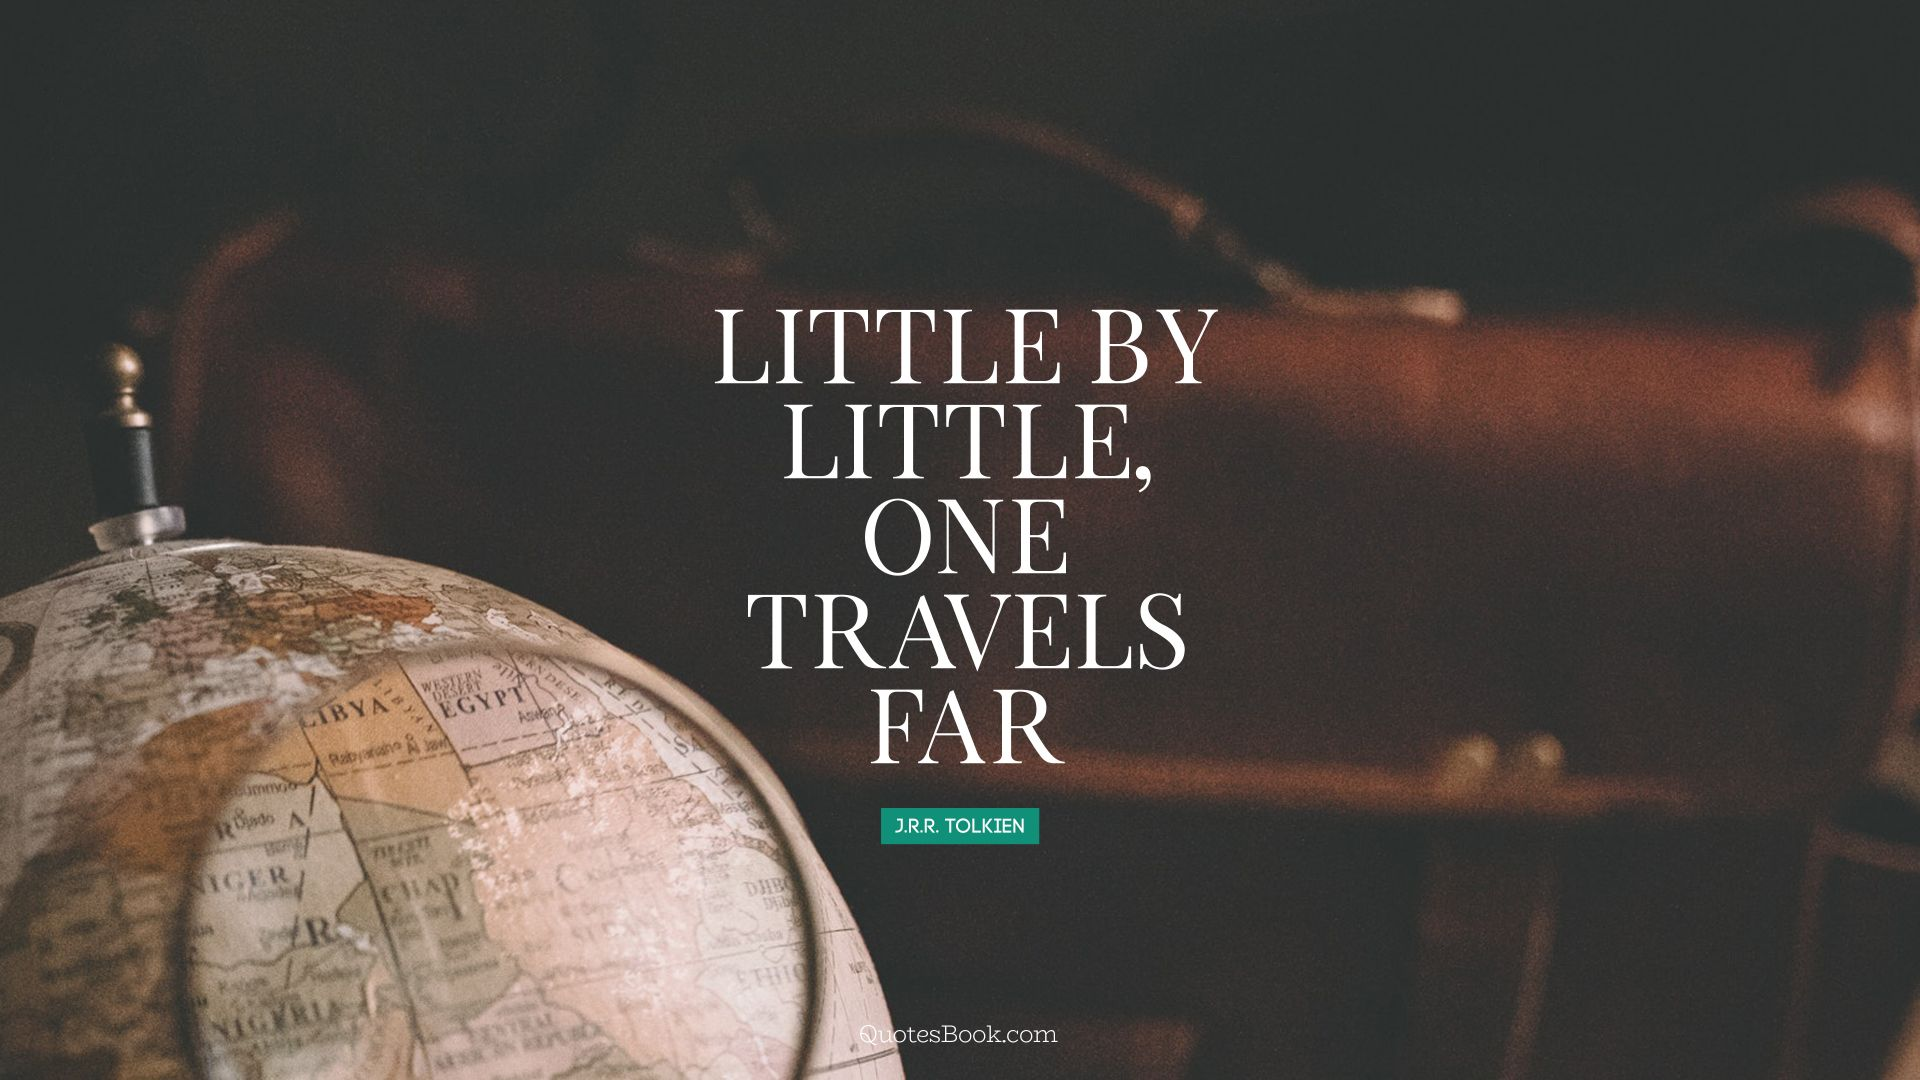 Little by little, one travels far. - Quote by J. R. R. Tolkien